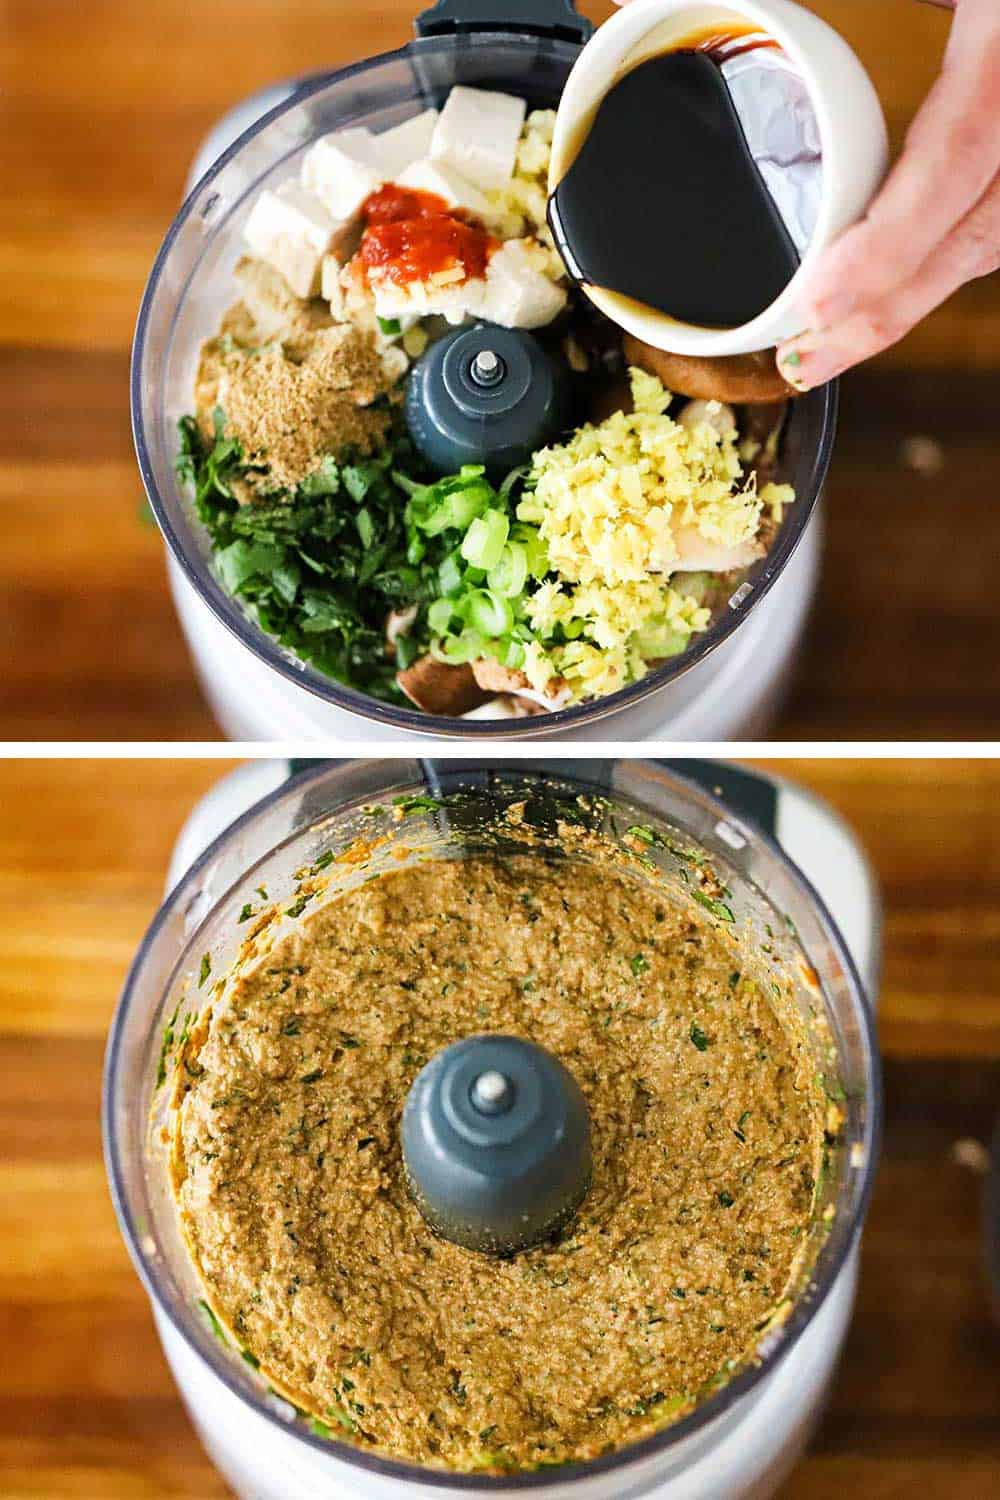 A person pouring soy sauce into a food processor filled with the ingredients for vegetarian steamed dumplings and then the food processor after the ingredients were puréed.